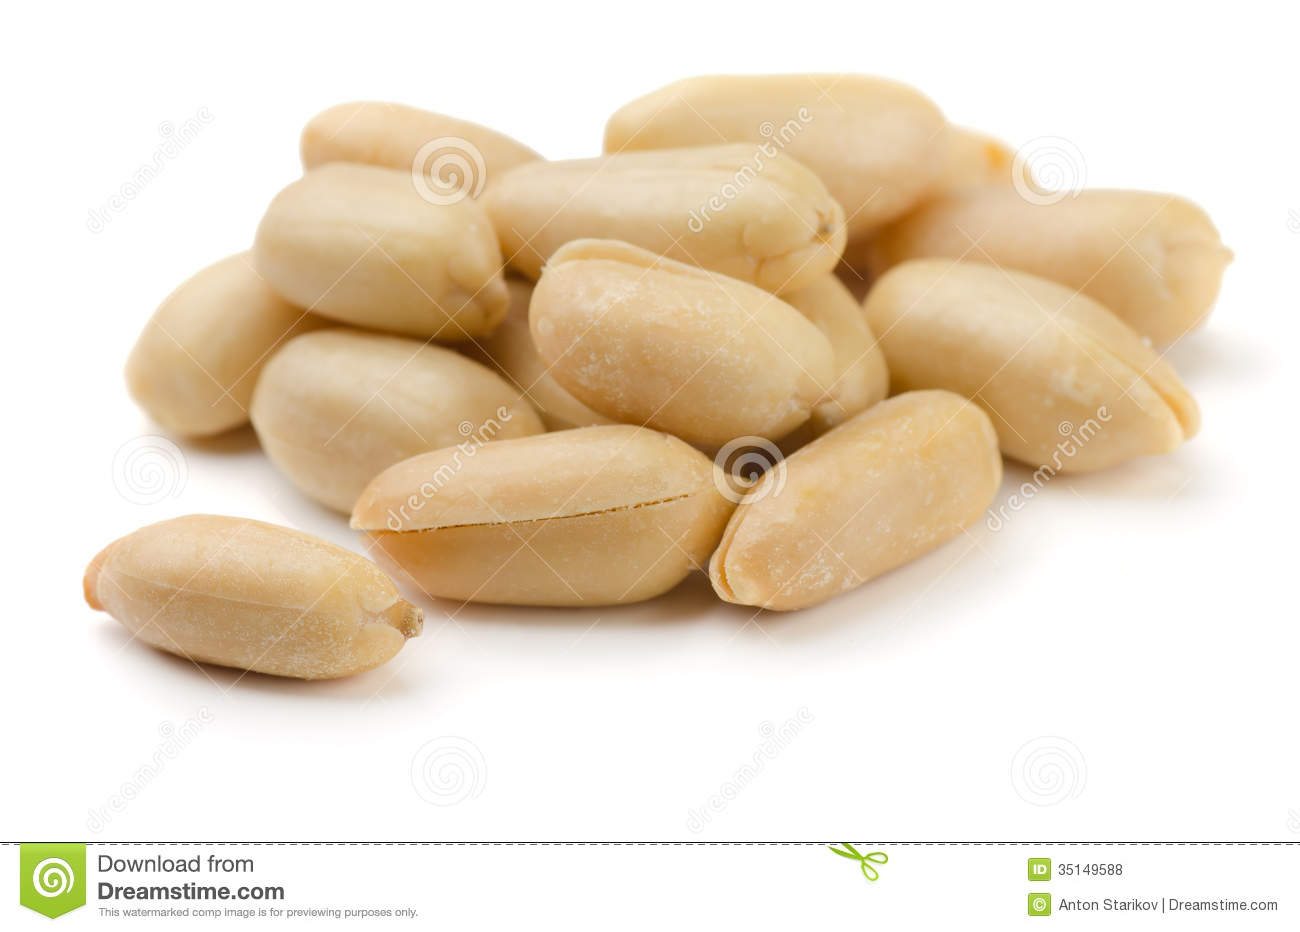 how to prepare salted peanuts